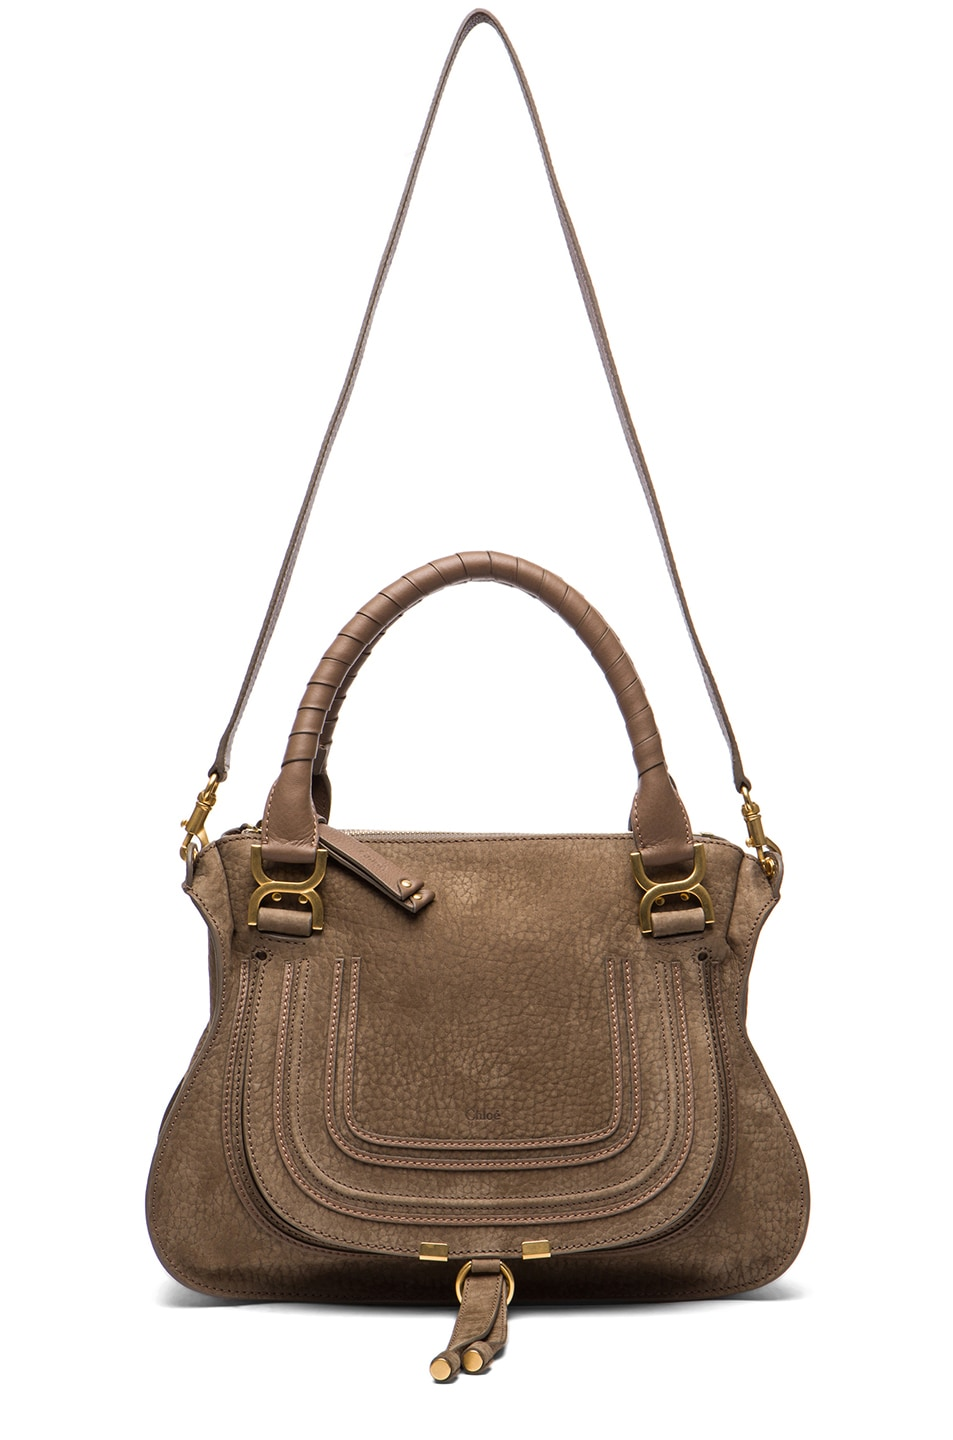 Image 5 of Chloe Medium Marcie Shoulder Bag in Moss Touch